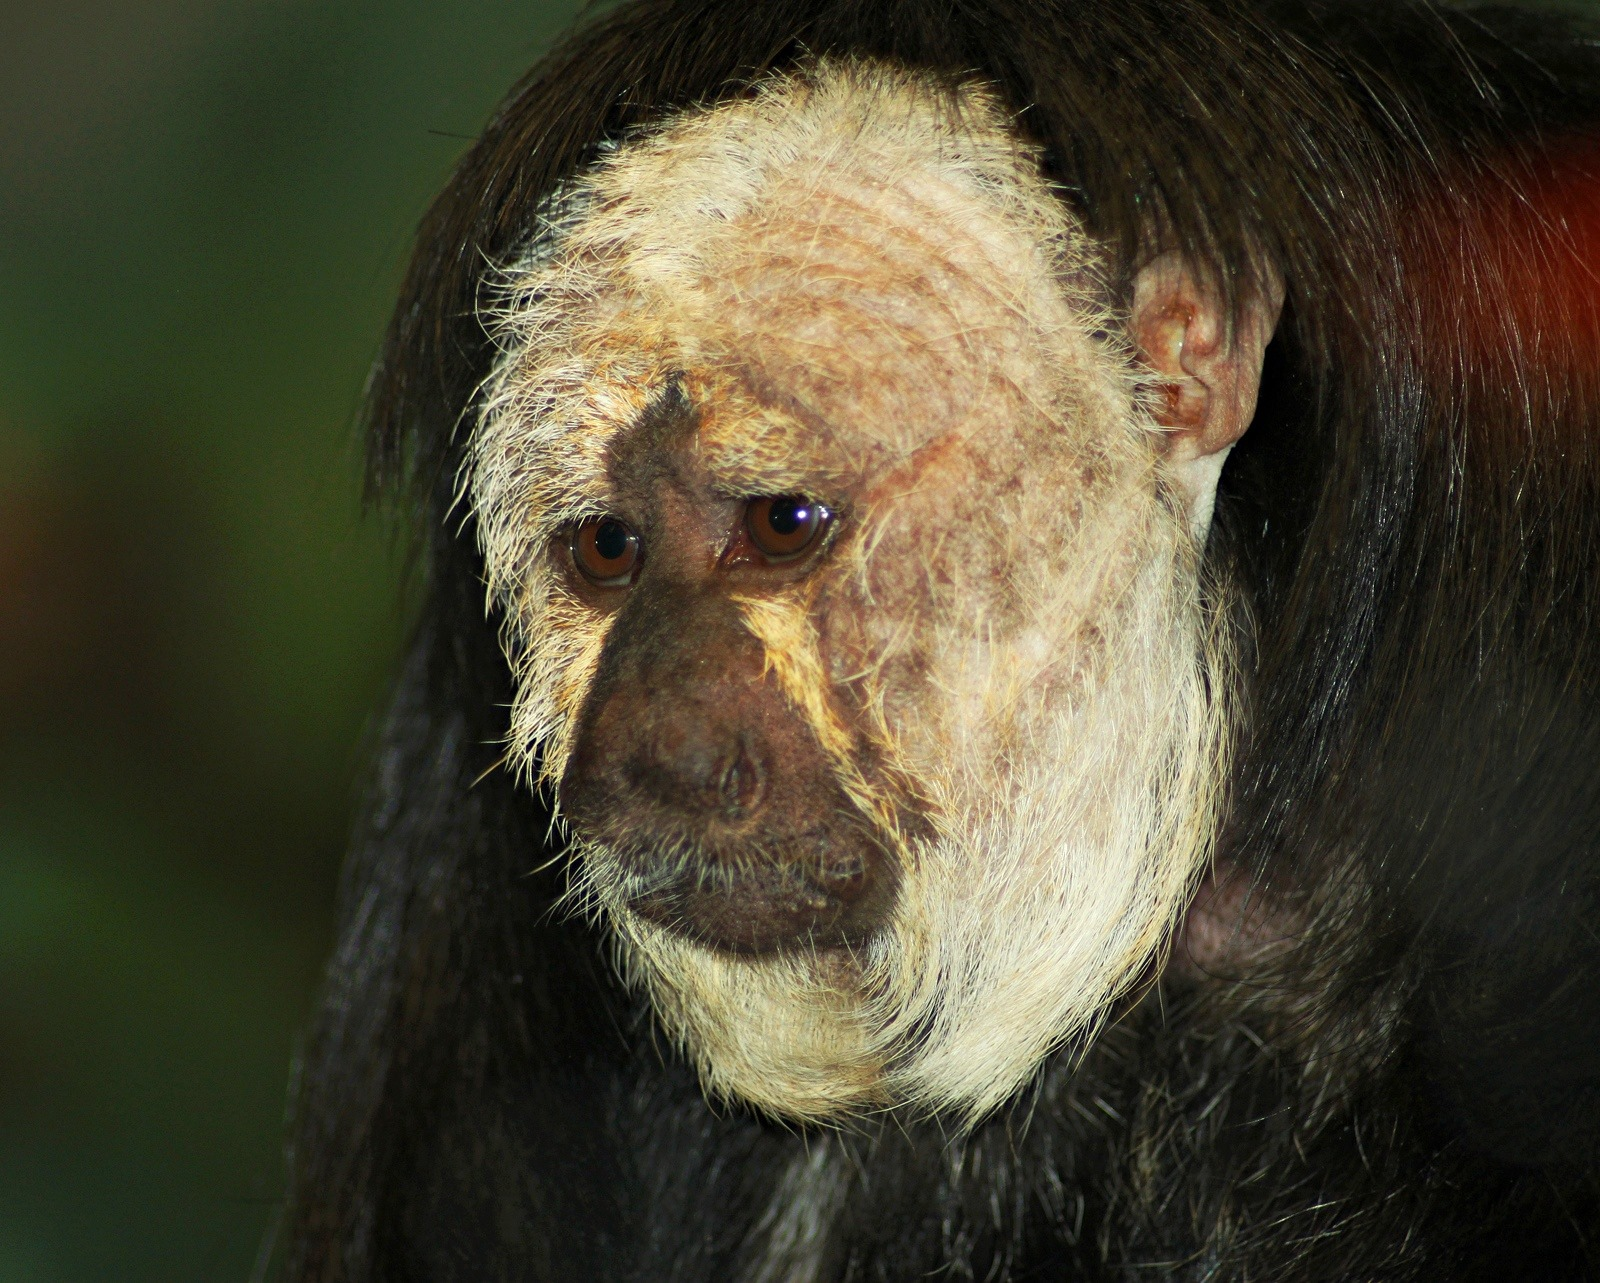 John Ball Zoo mourning death of monkey who was 'wonderful ambassador for his species'